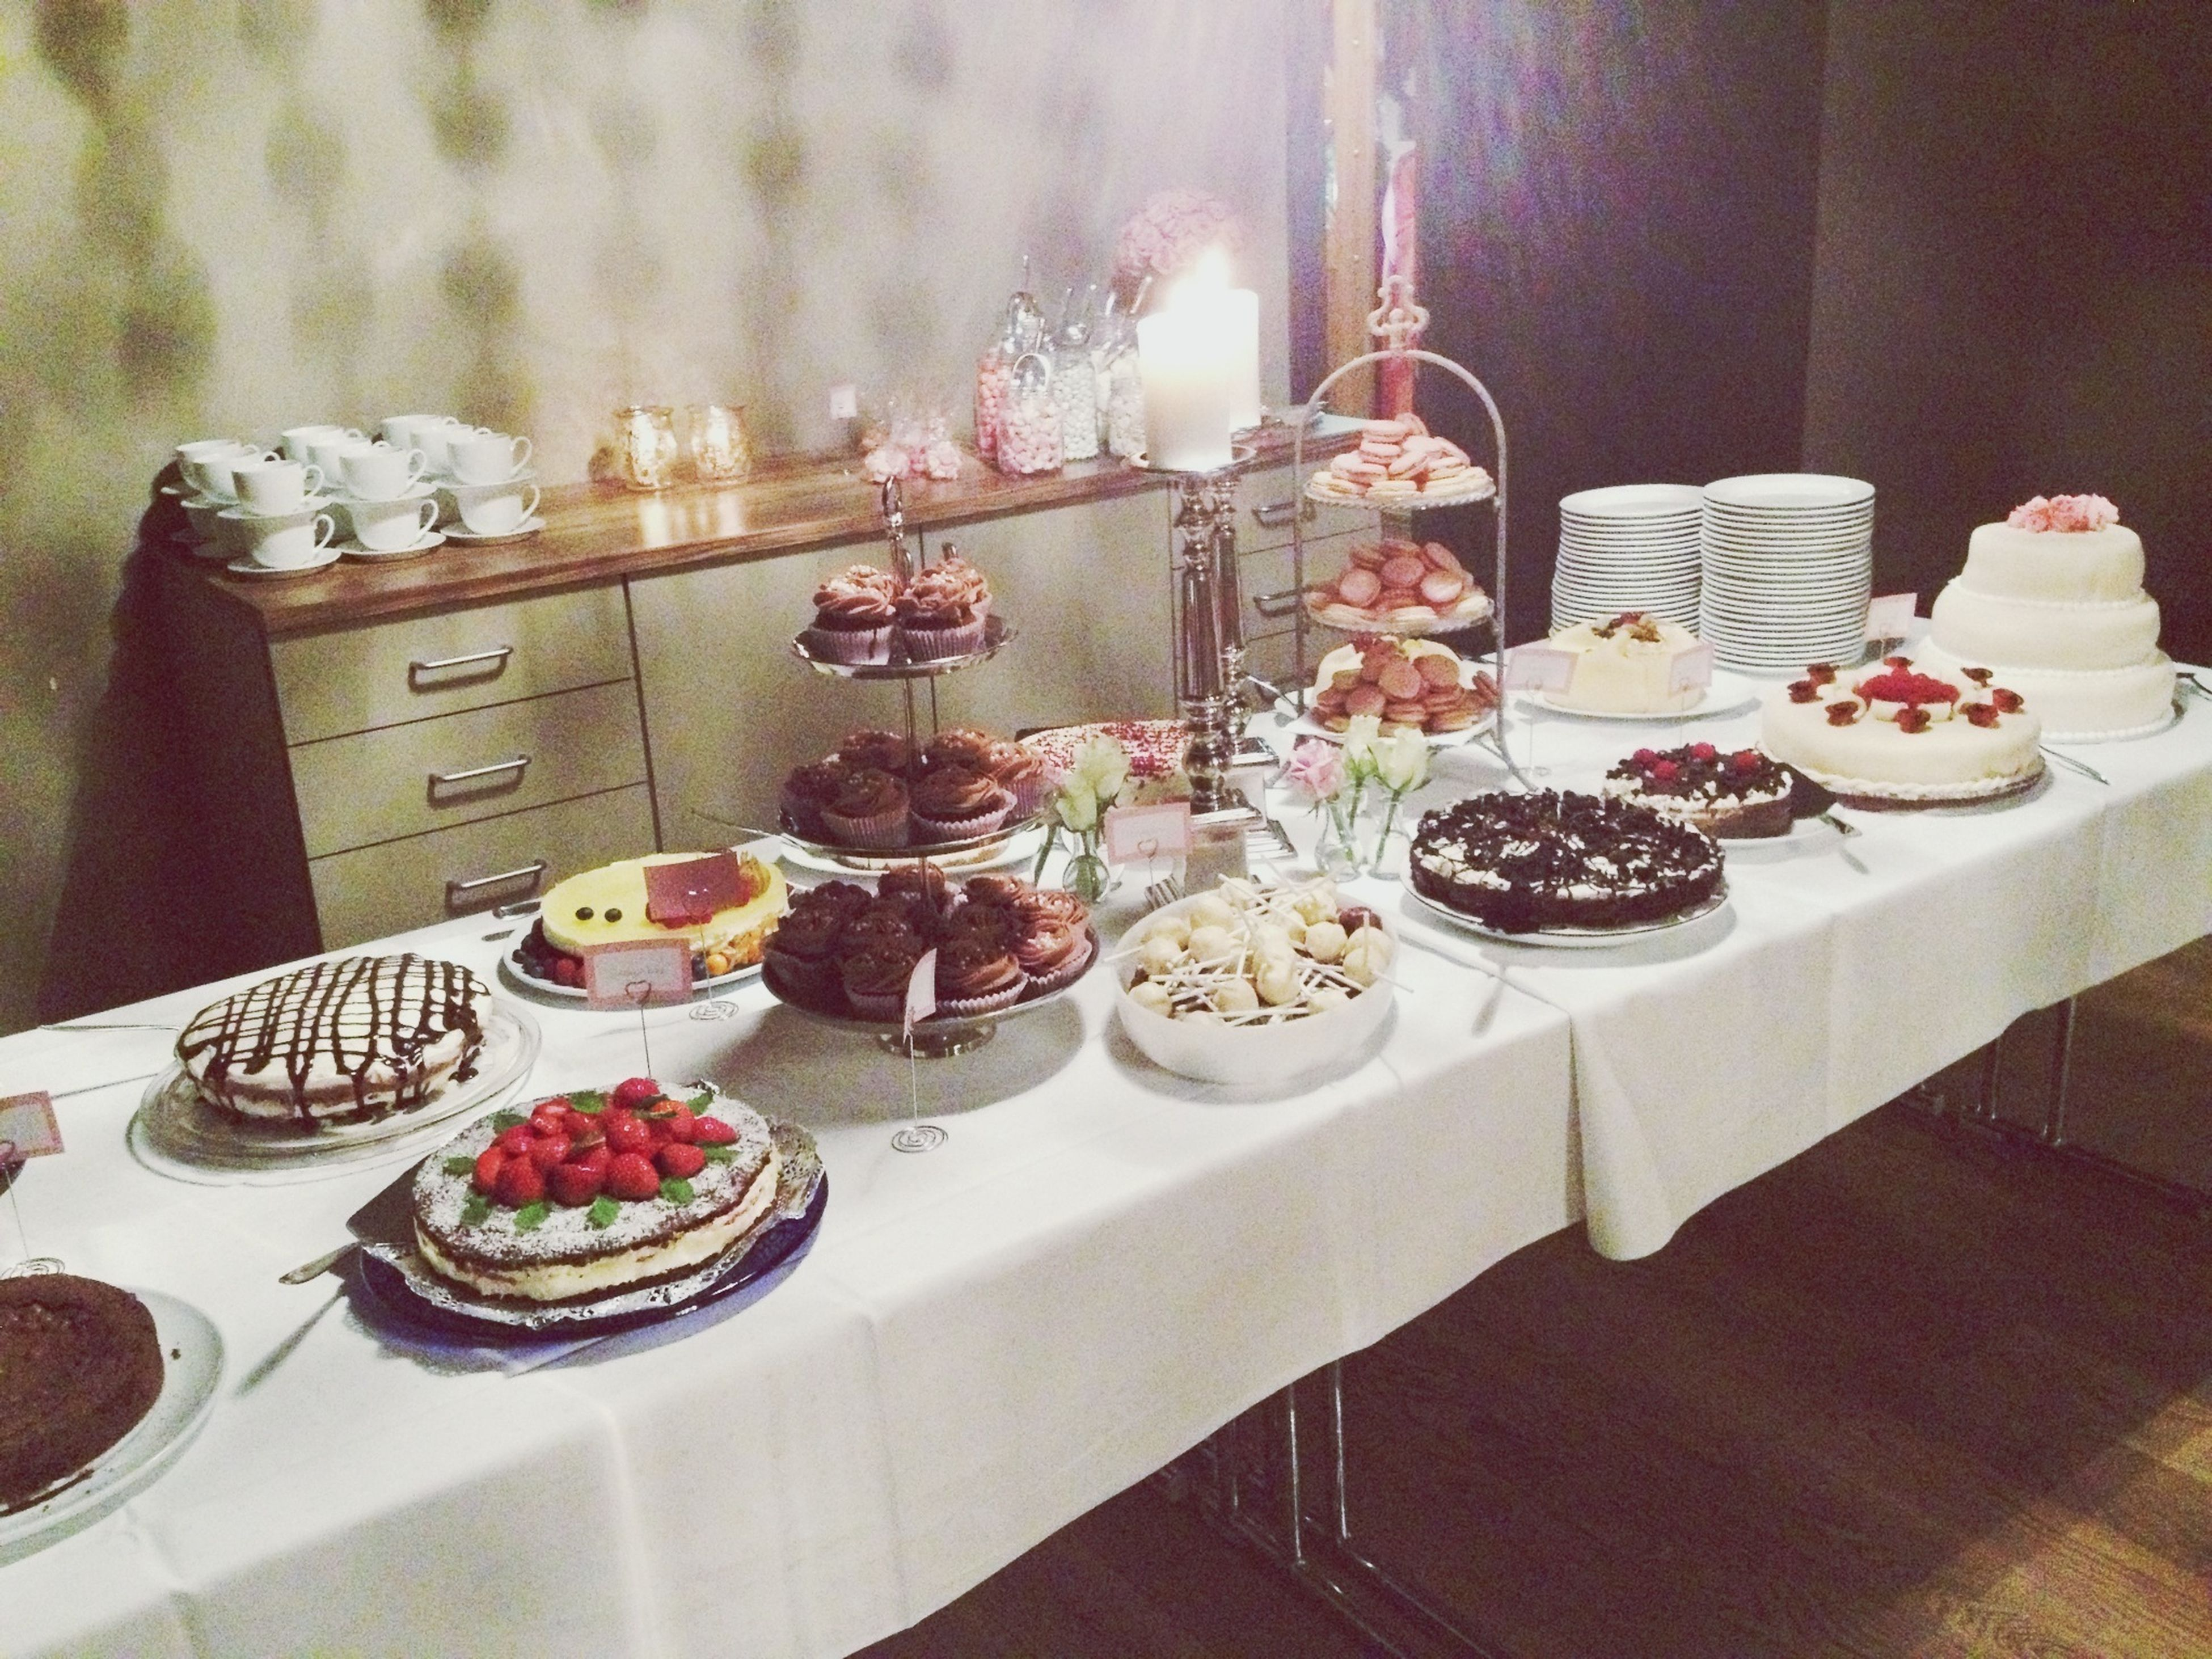 indoors, food and drink, table, freshness, food, still life, sweet food, plate, ready-to-eat, variation, indulgence, dessert, glass - material, arrangement, cake, drinking glass, unhealthy eating, close-up, no people, restaurant